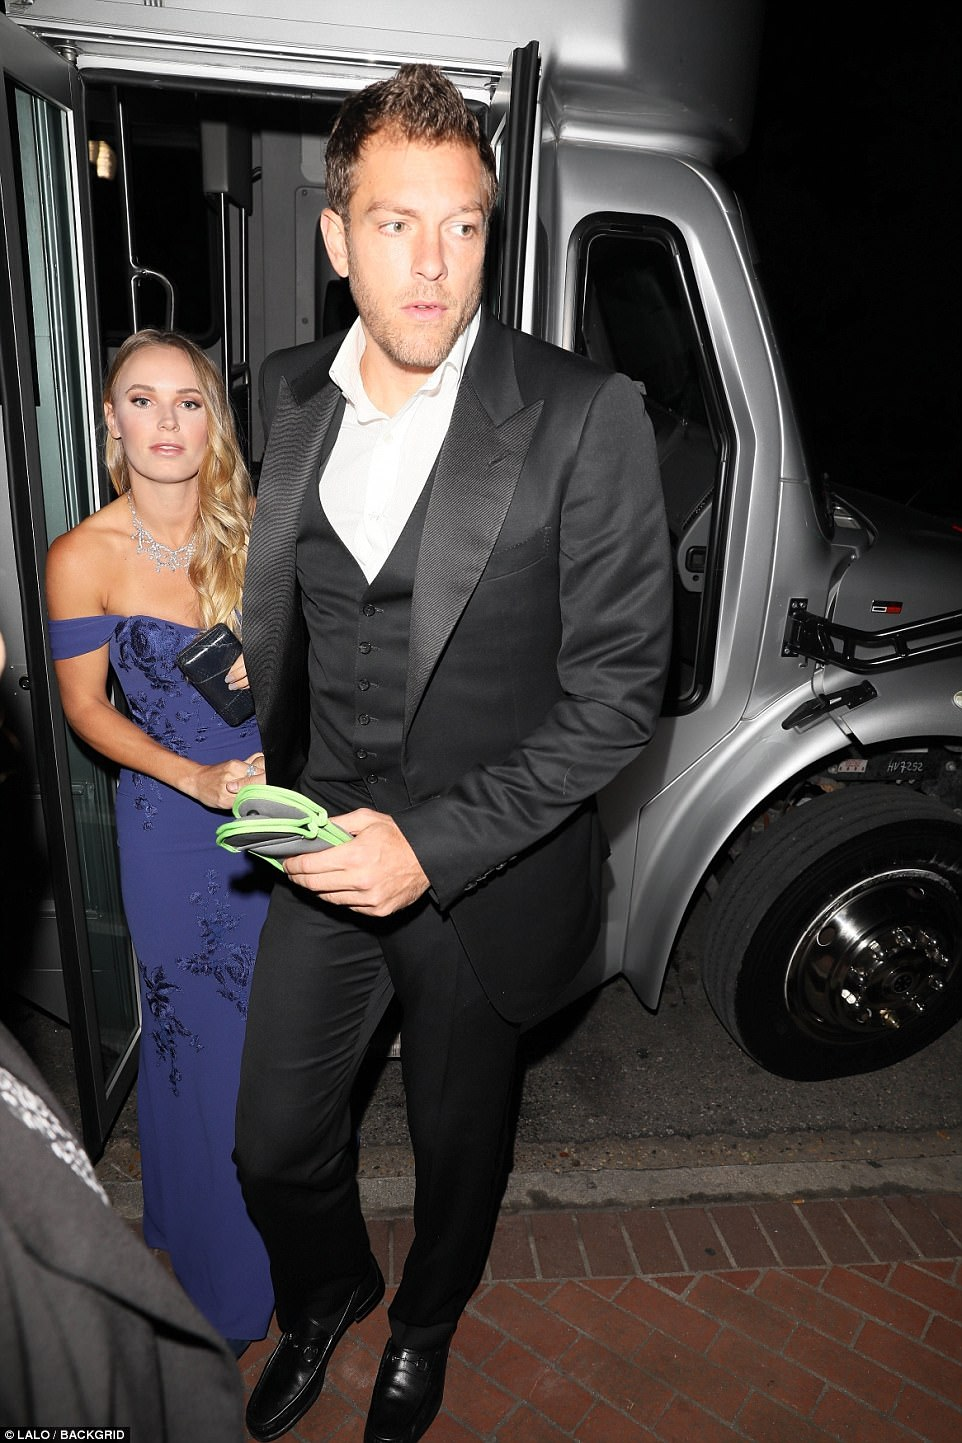 466DD28100000578-5091071-Tennis_star_Caroline_Wozniacki_and_fiance_David_Lee_carrying_the-a-13_1510880505015